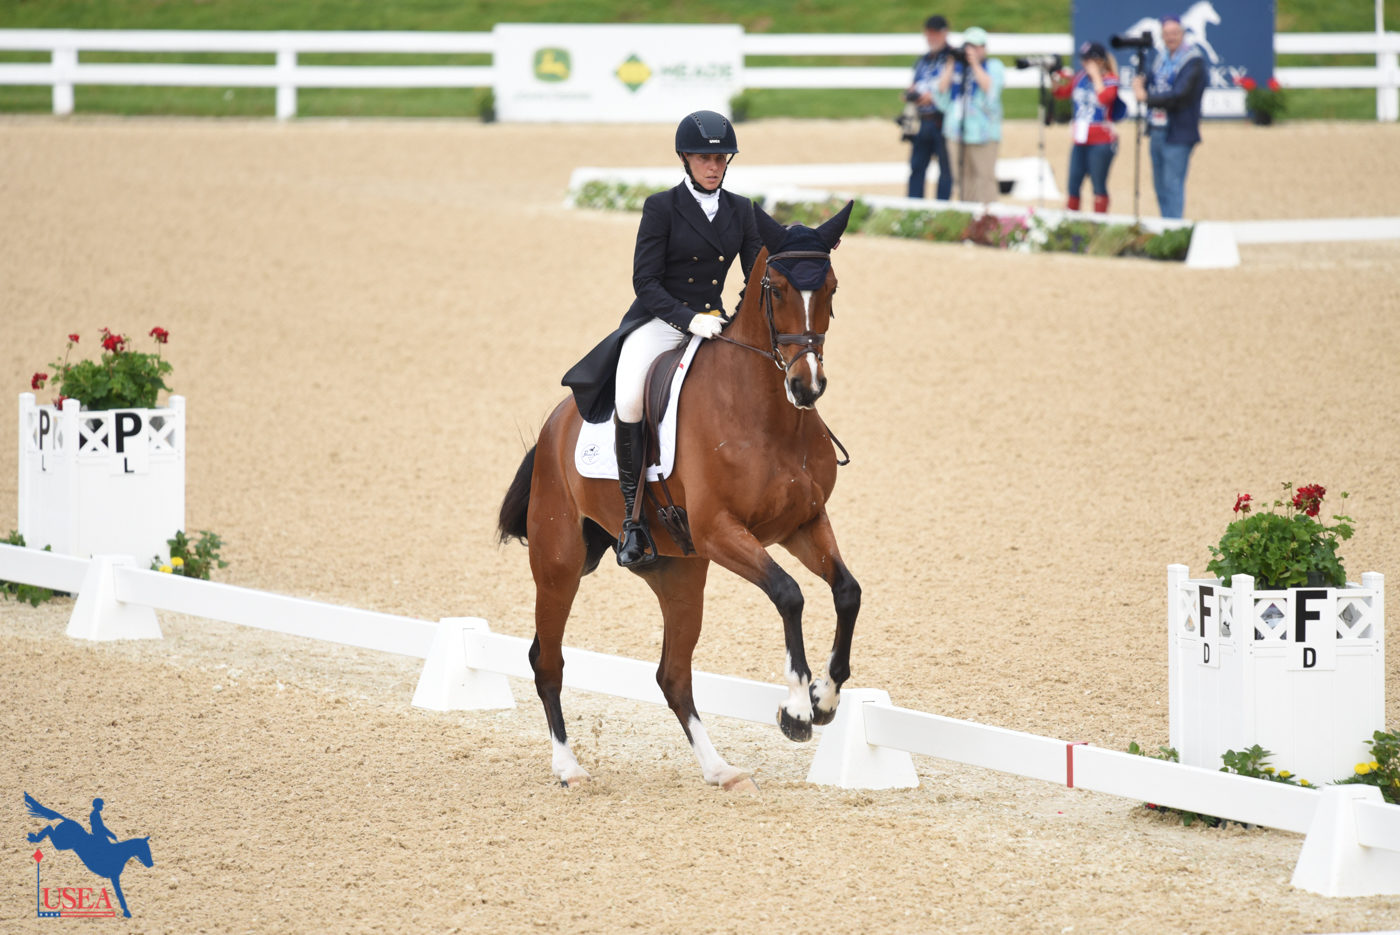 2nd - Elisabeth Halliday-Sharp and Deniro Z - 30.9